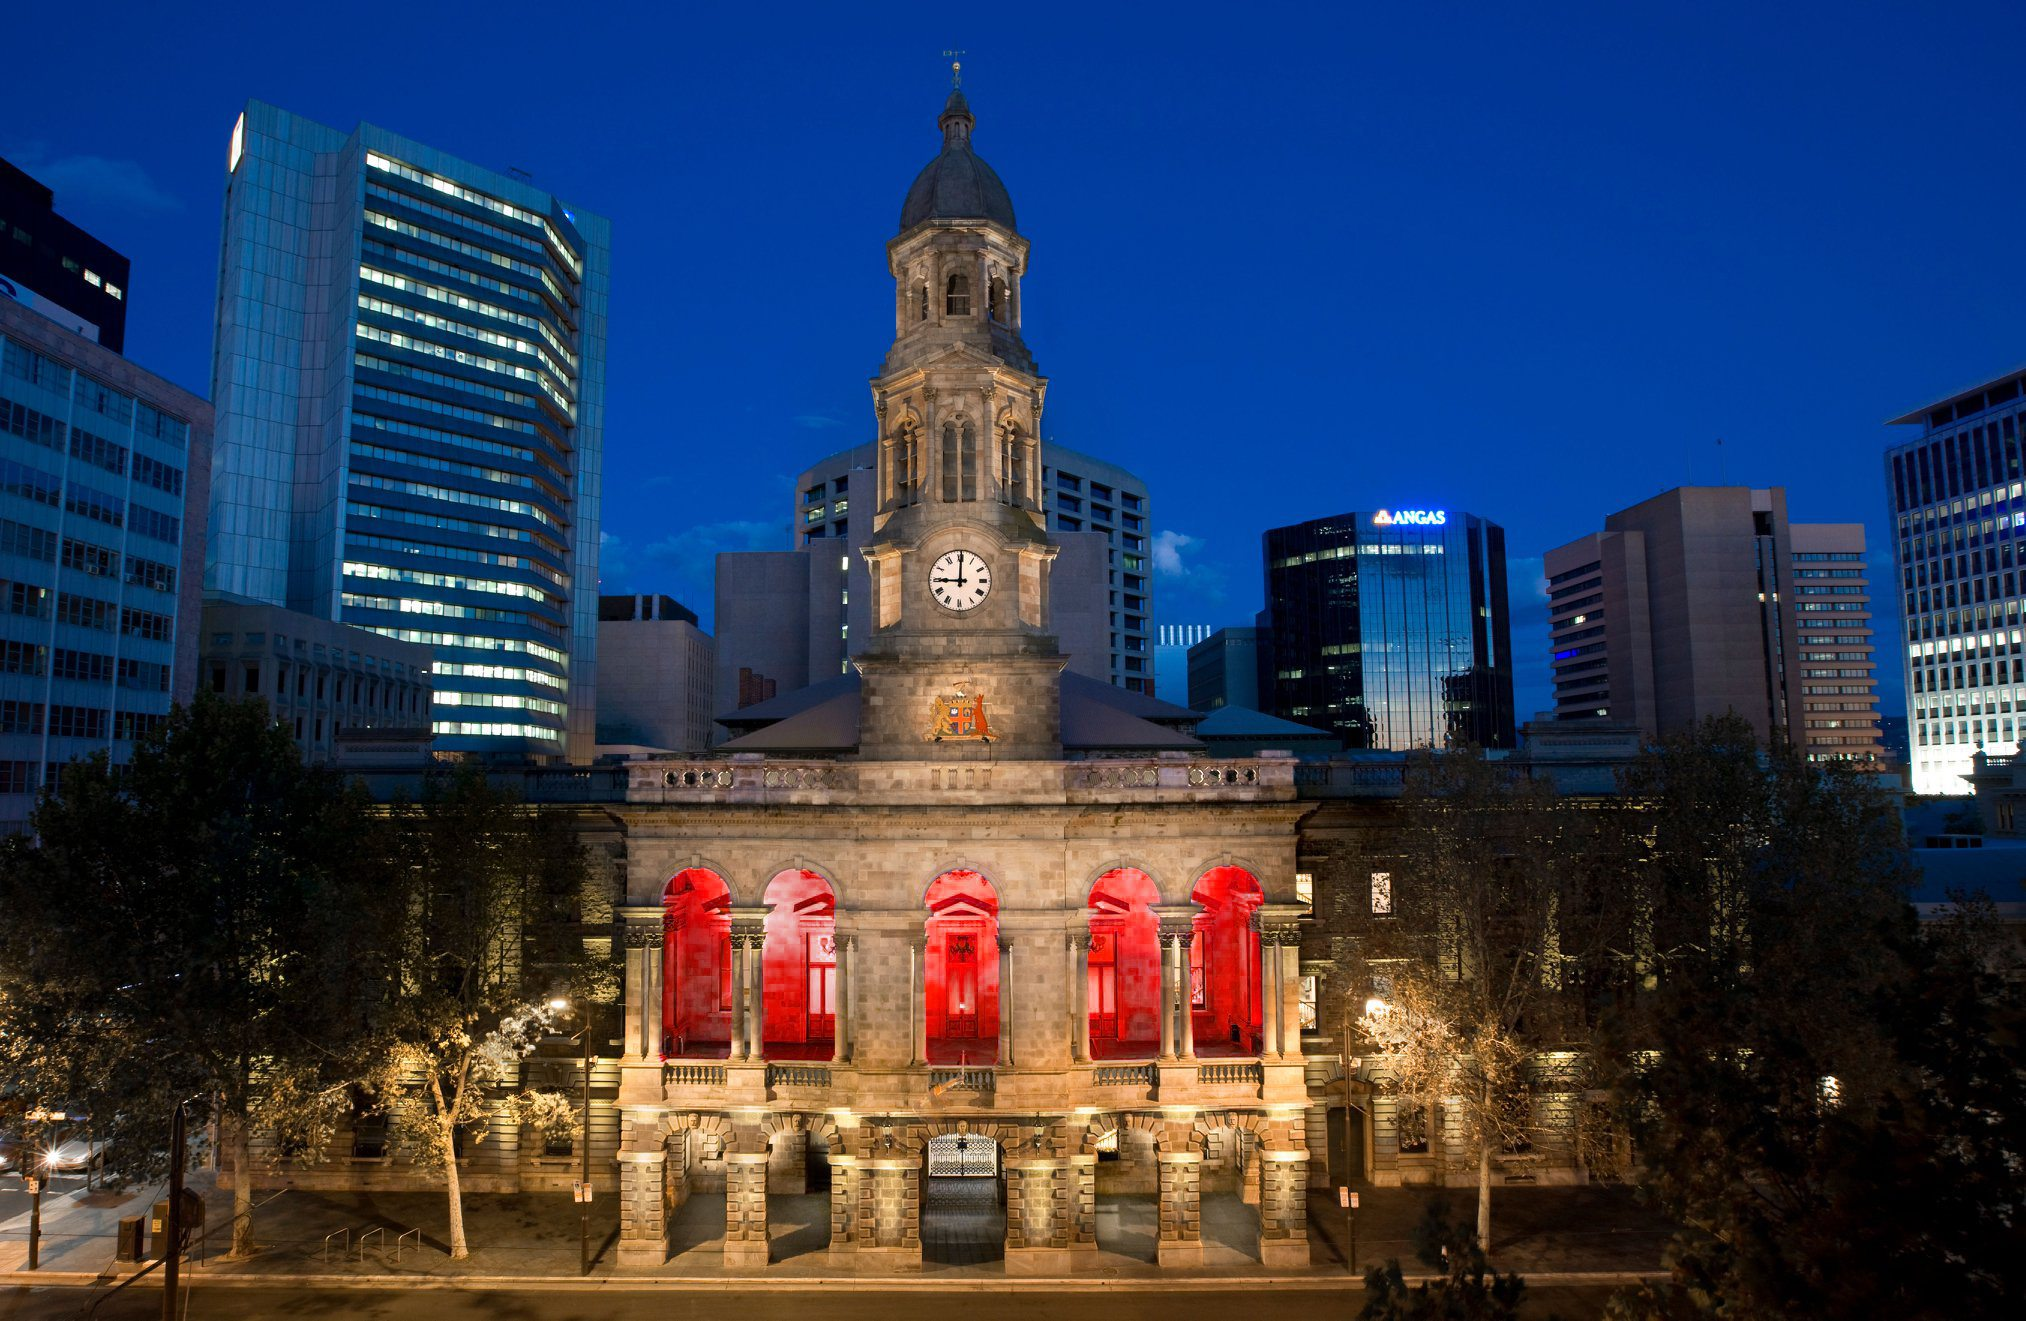 Adelaide Town Hall - City of Adelaide